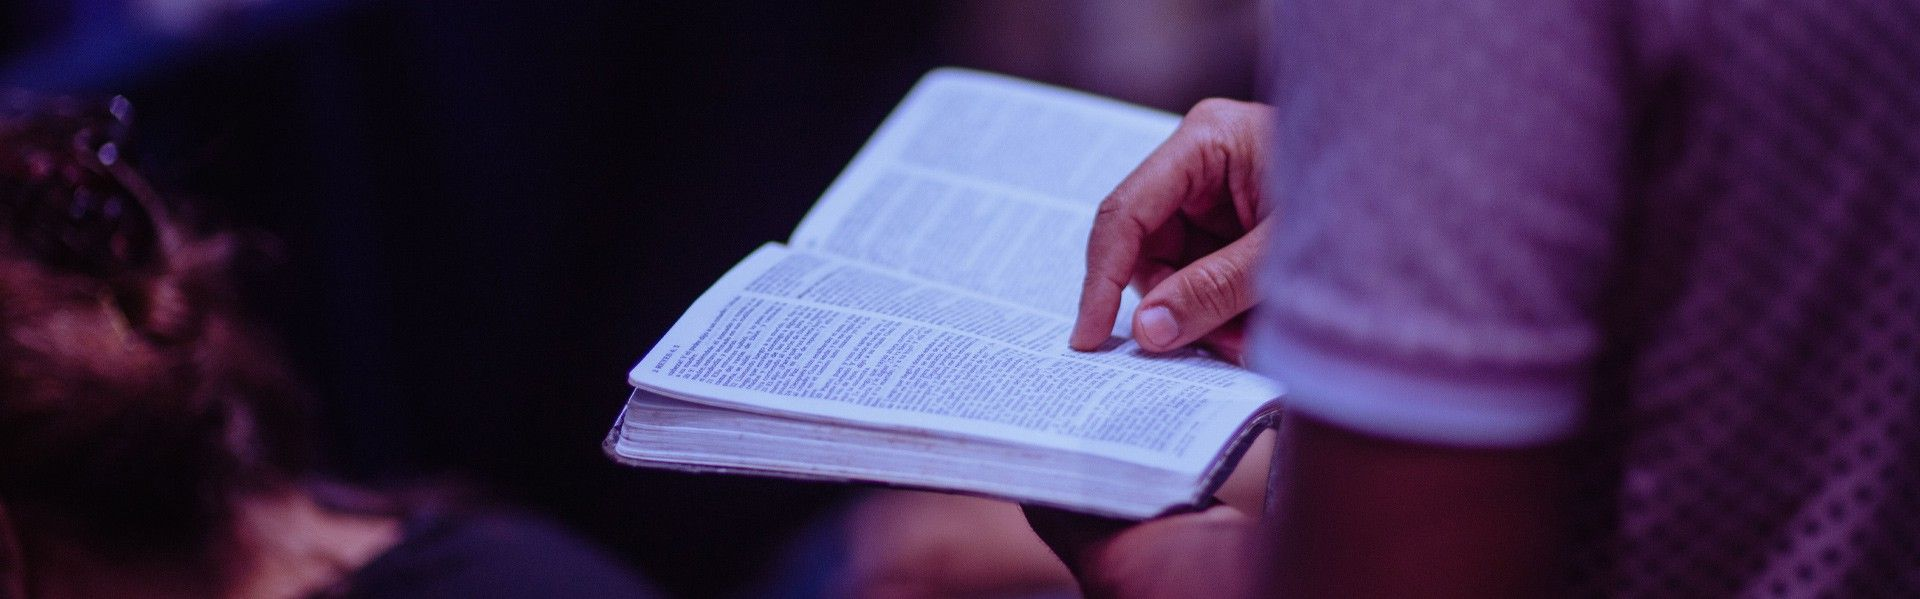 A person reading the bible and praying